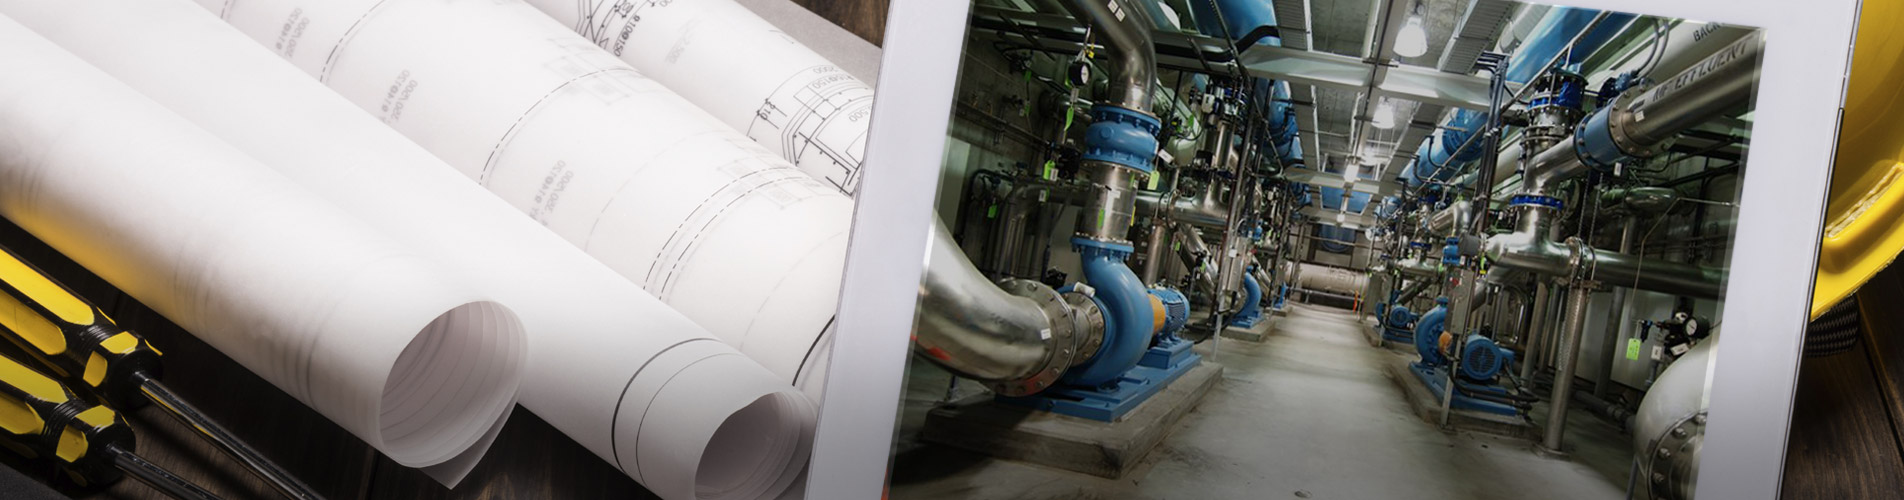 Project Management Pump System Manufacturing